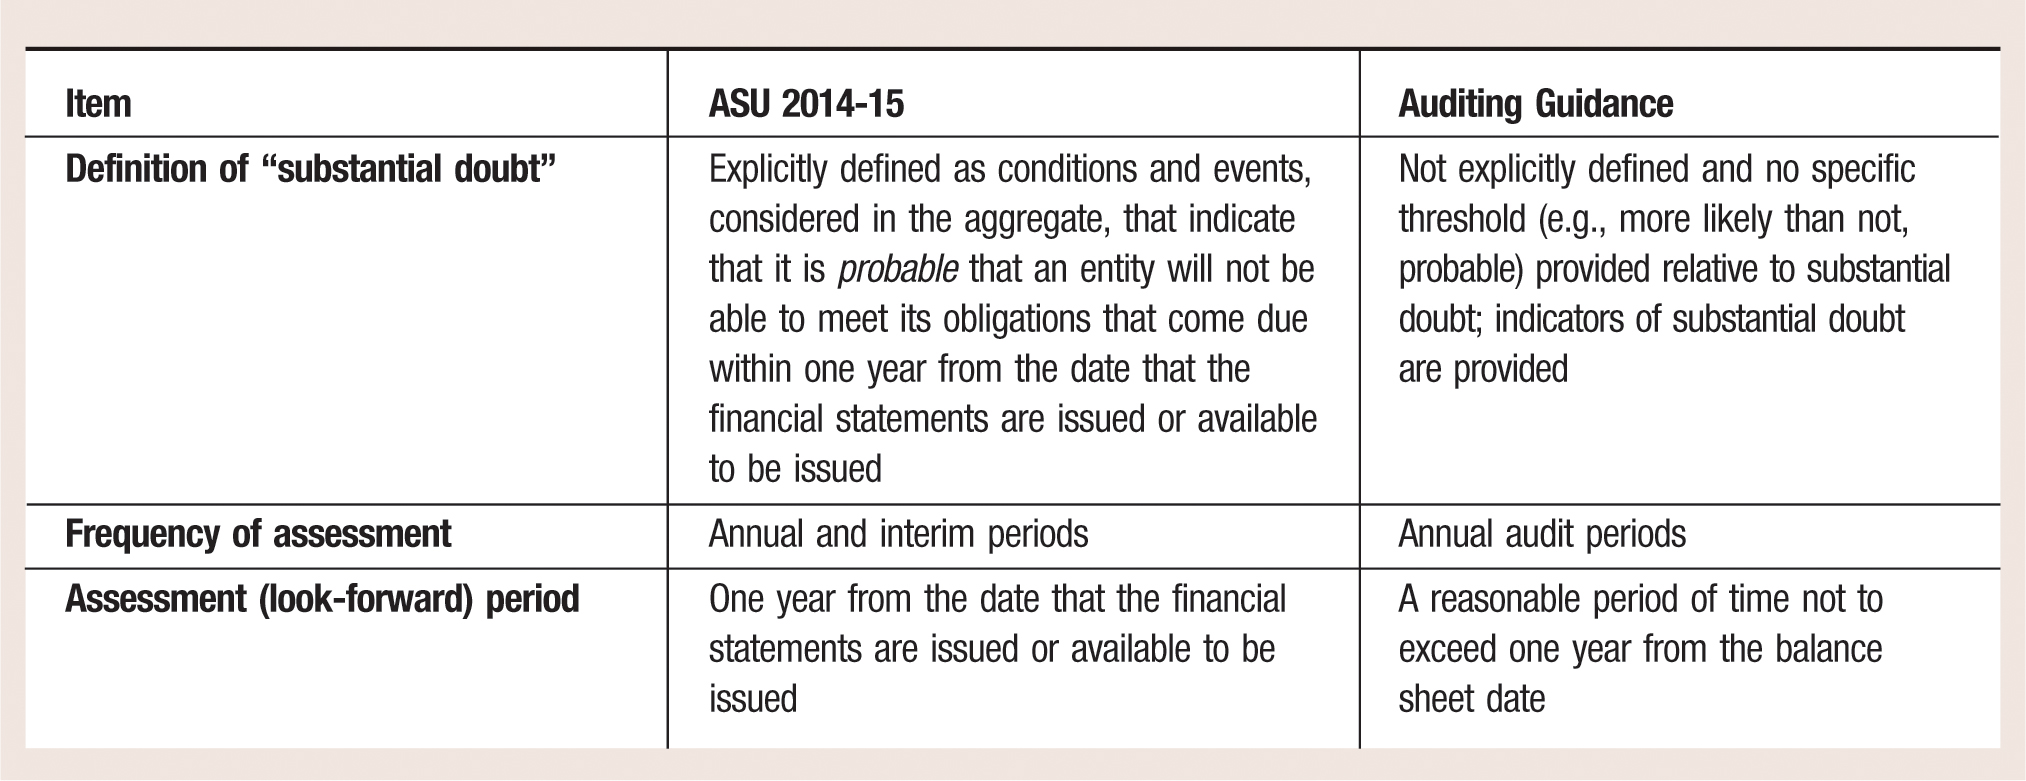 "Item ASU 2014-15 Auditing Guidance Definition of ""substantial doubt"" Explicitly defined as conditions and events, considered in the aggregate, that indicate that it is probable that an entity will not be able to meet its obligations that come due within one year from the date that the financial statements are issued or available to be issued Not explicitly defined and no specific threshold (e.g., more likely than not, probable) provided relative to substantial doubt; indicators of substantial doubt are provided Frequency of assessment Annual and interim periods Annual audit periods Assessment (look-forward) period One year from the date that the financial statements are issued or available to be issued A reasonable period of time not to exceed one year from the balance sheet date"